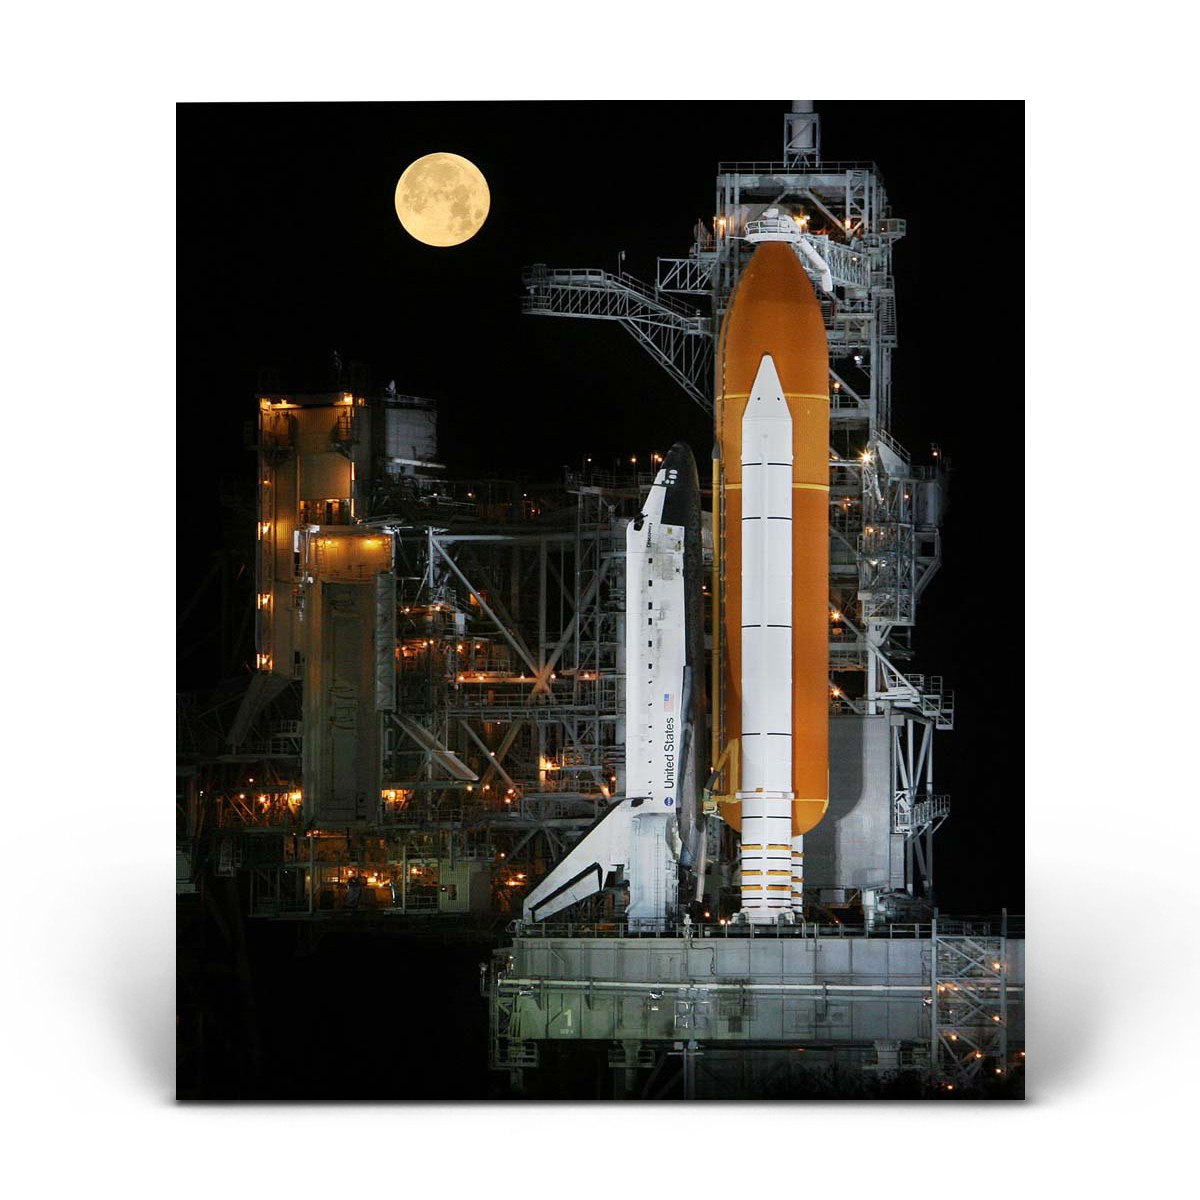 Space Shuttle: In the Moonlight